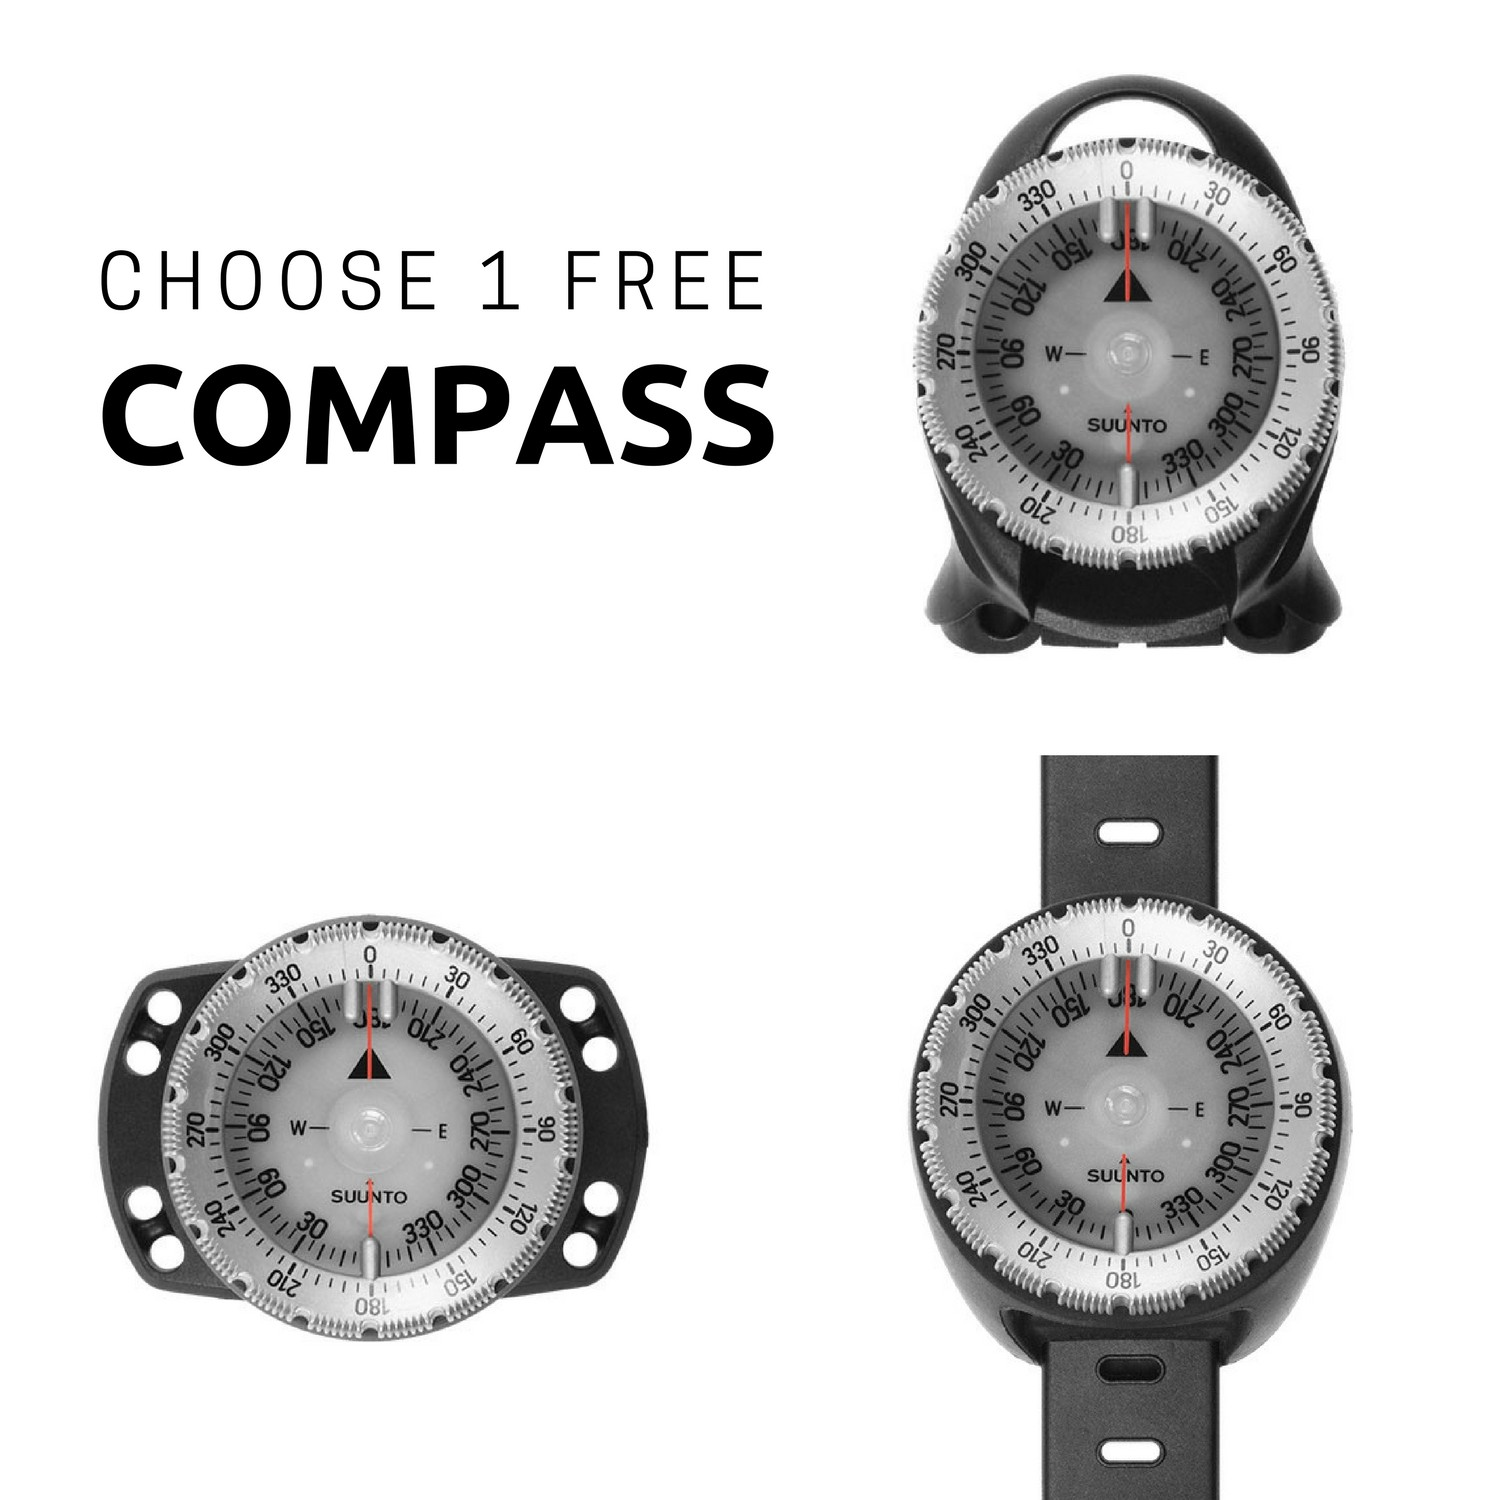 Suunto Zoop Novo Wrist Dive Computer with FREE Compass - Limited Time Offer!